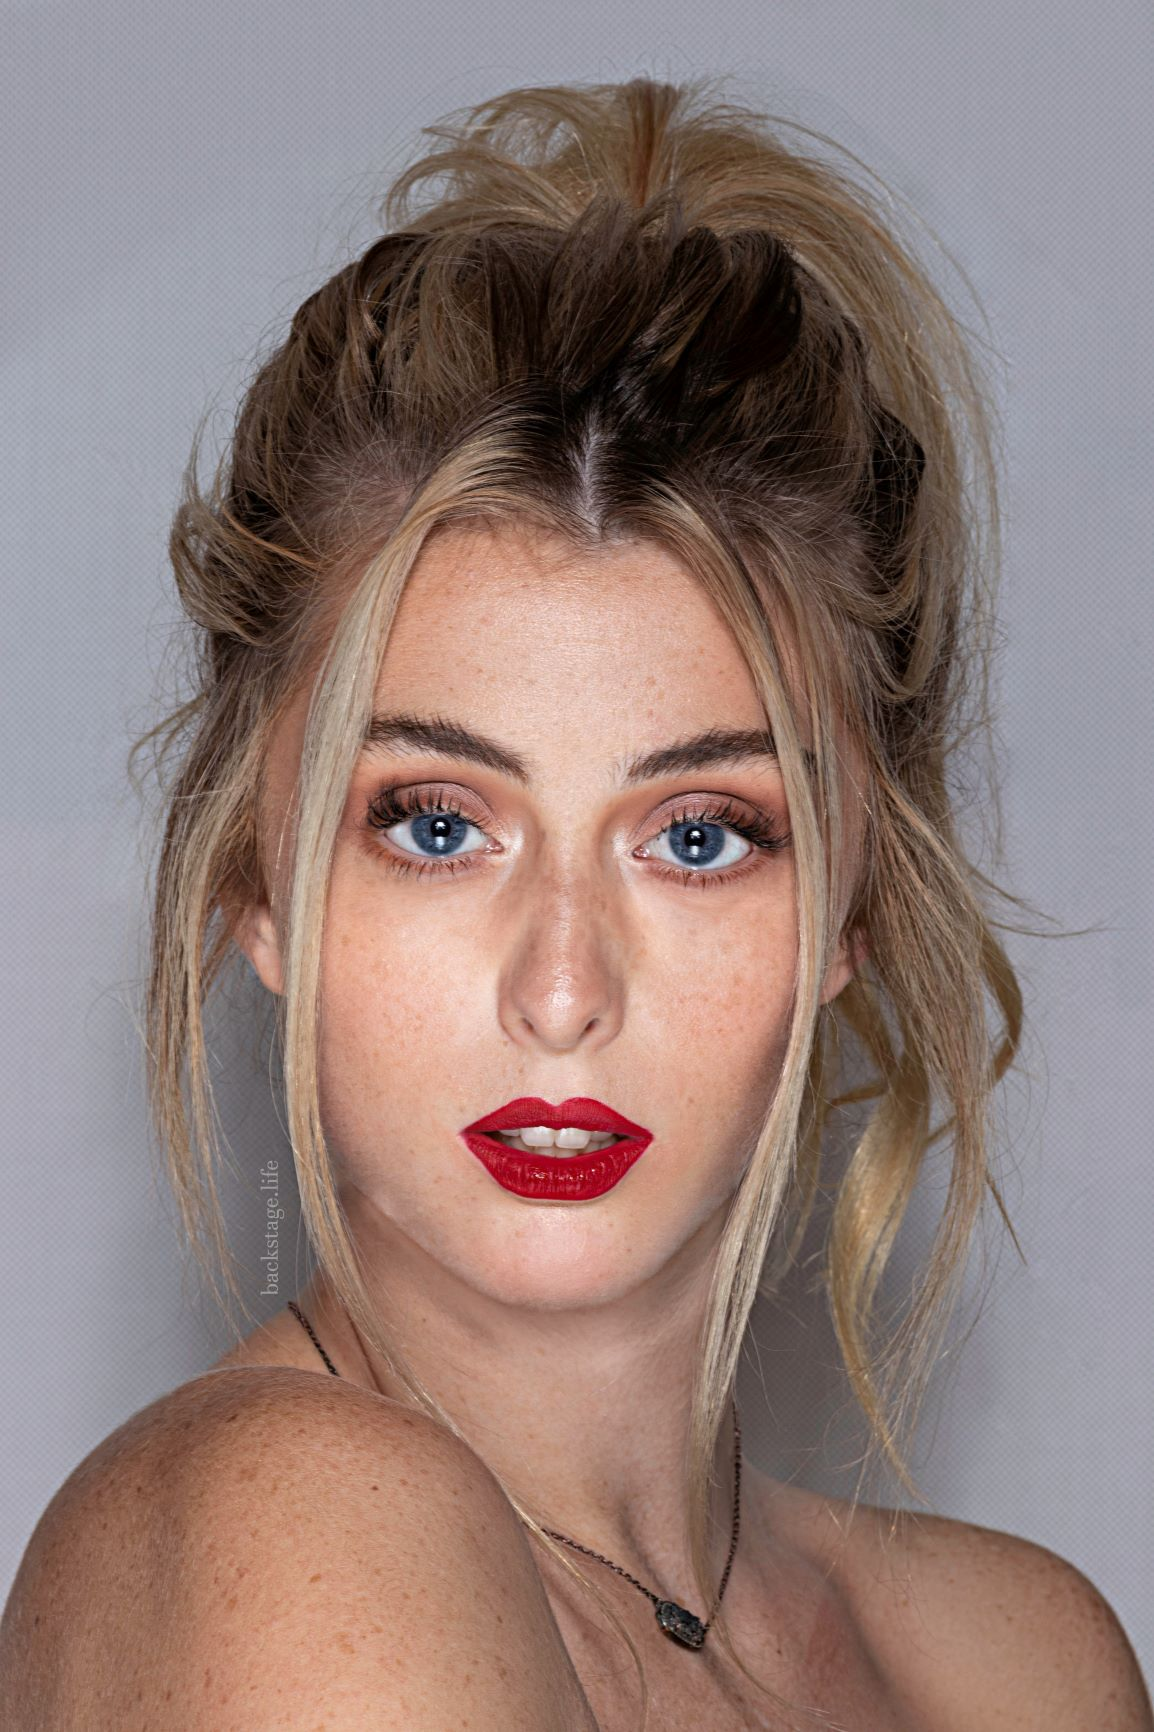 SLICK ON A FRESH RED LIPSTICK   Nothing dresses you faster than a swipe of red lipstick. Fill in your lips with a red lipliner, then apply a lipstick or liquid lipstick on top. This extra step will help the hue last all night.